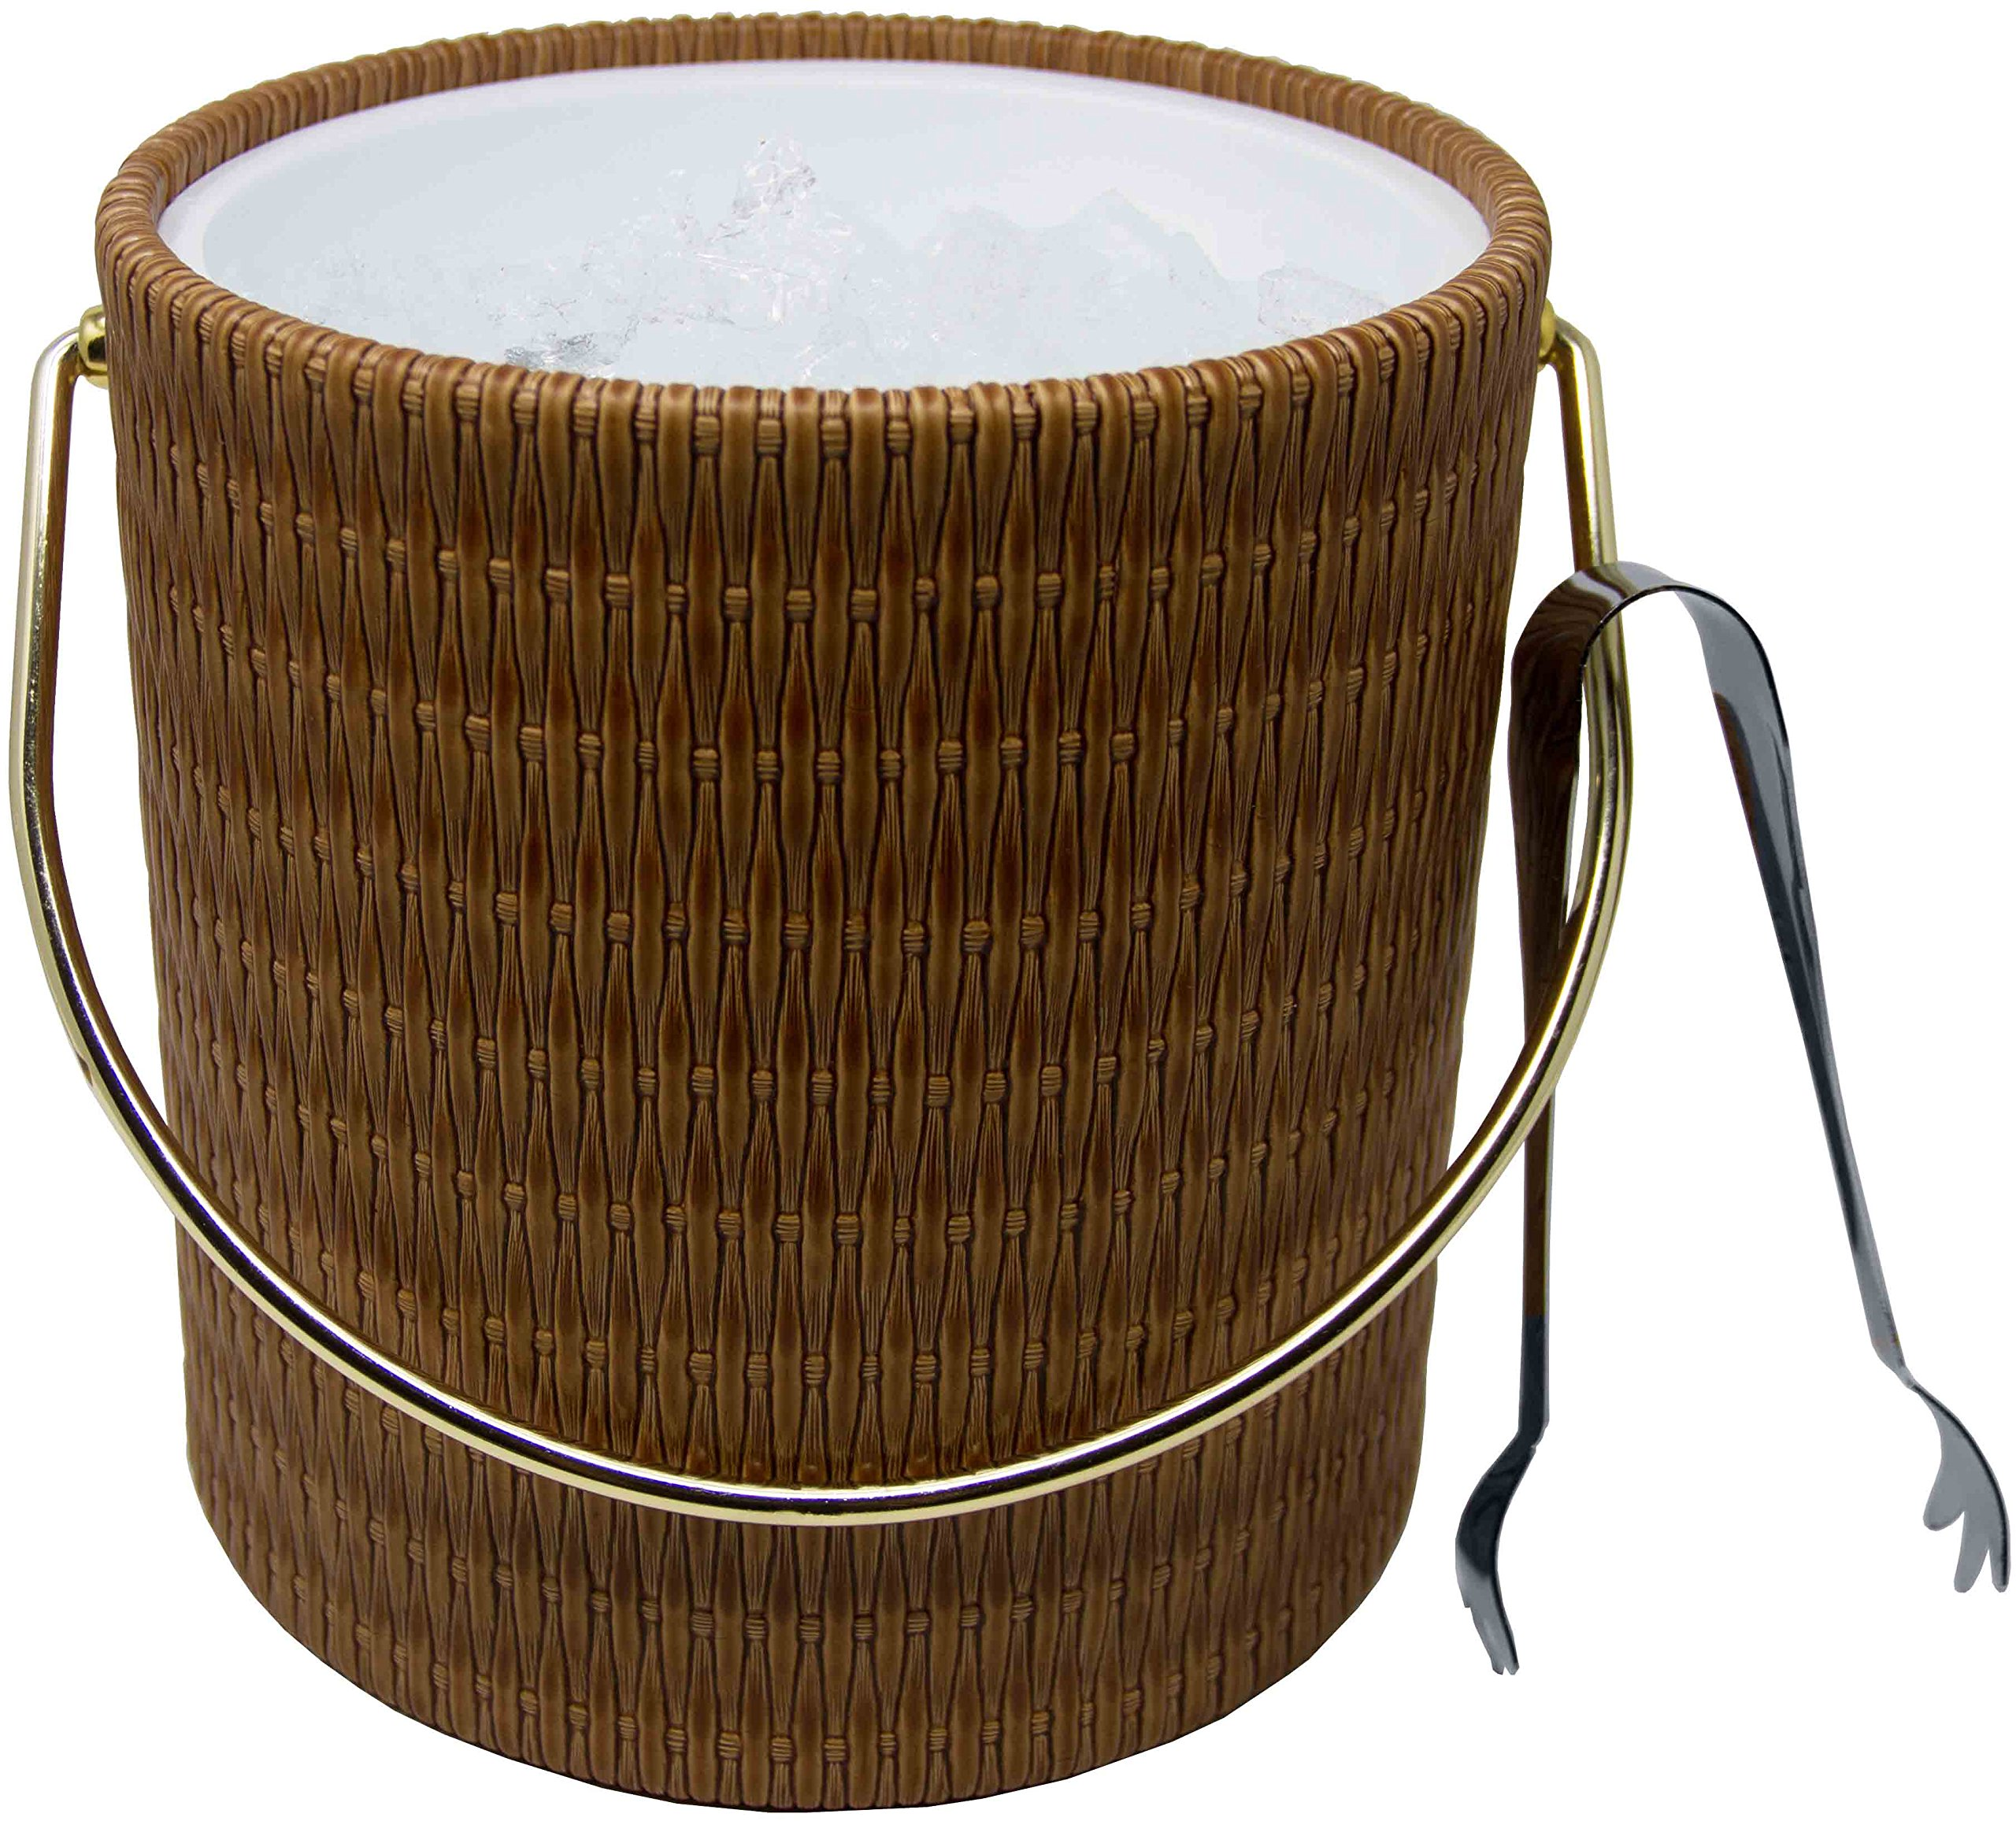 Hand Made In USA Double Walled 3-Quart Peanut Wicker Insulated Ice Bucket With Bonus Ice Tongs